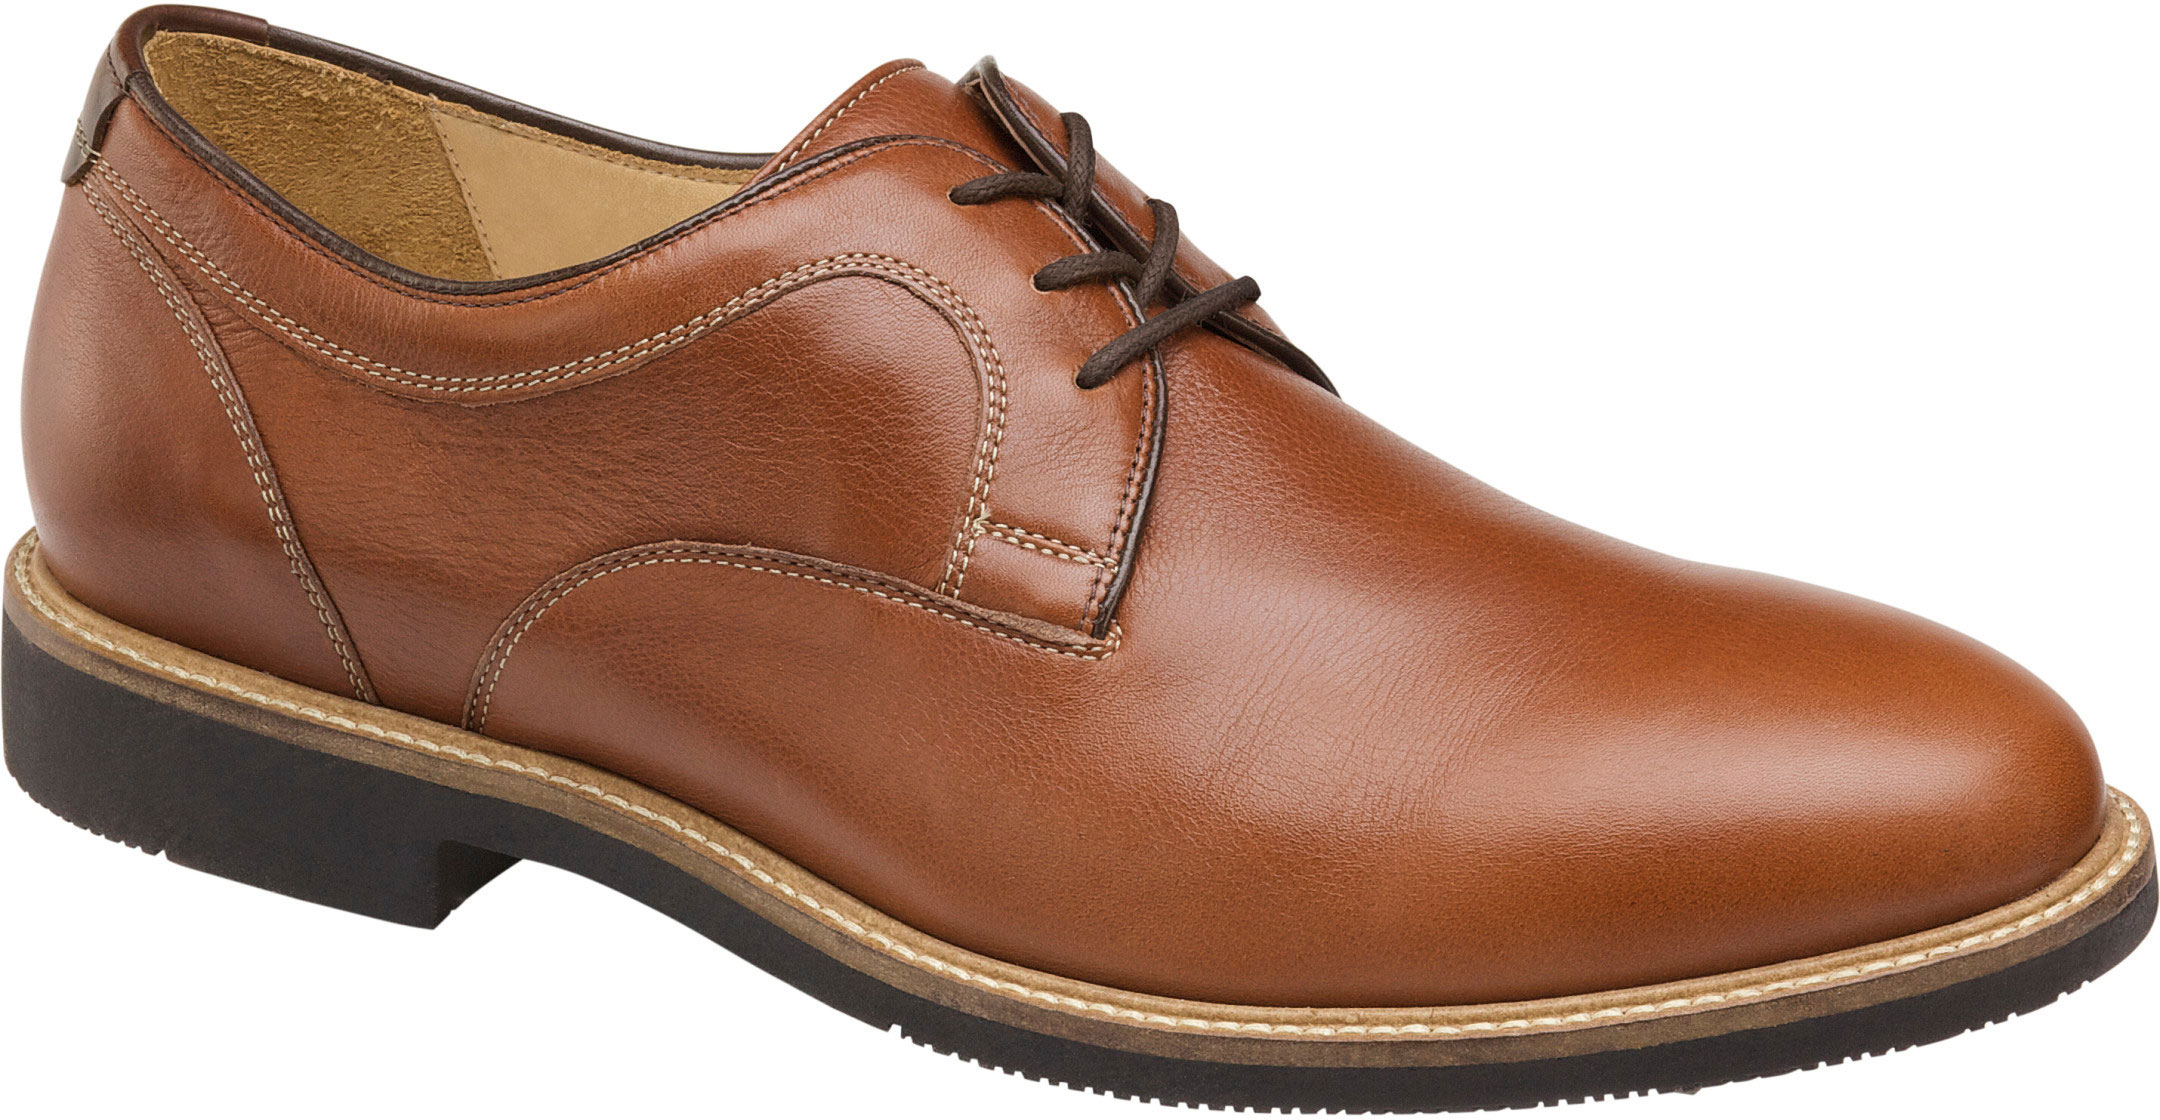 762bad02d4f Johnston Murphy Men s Barlow Plain Toe 20-4072 Dark Tan - The Shoe Mart